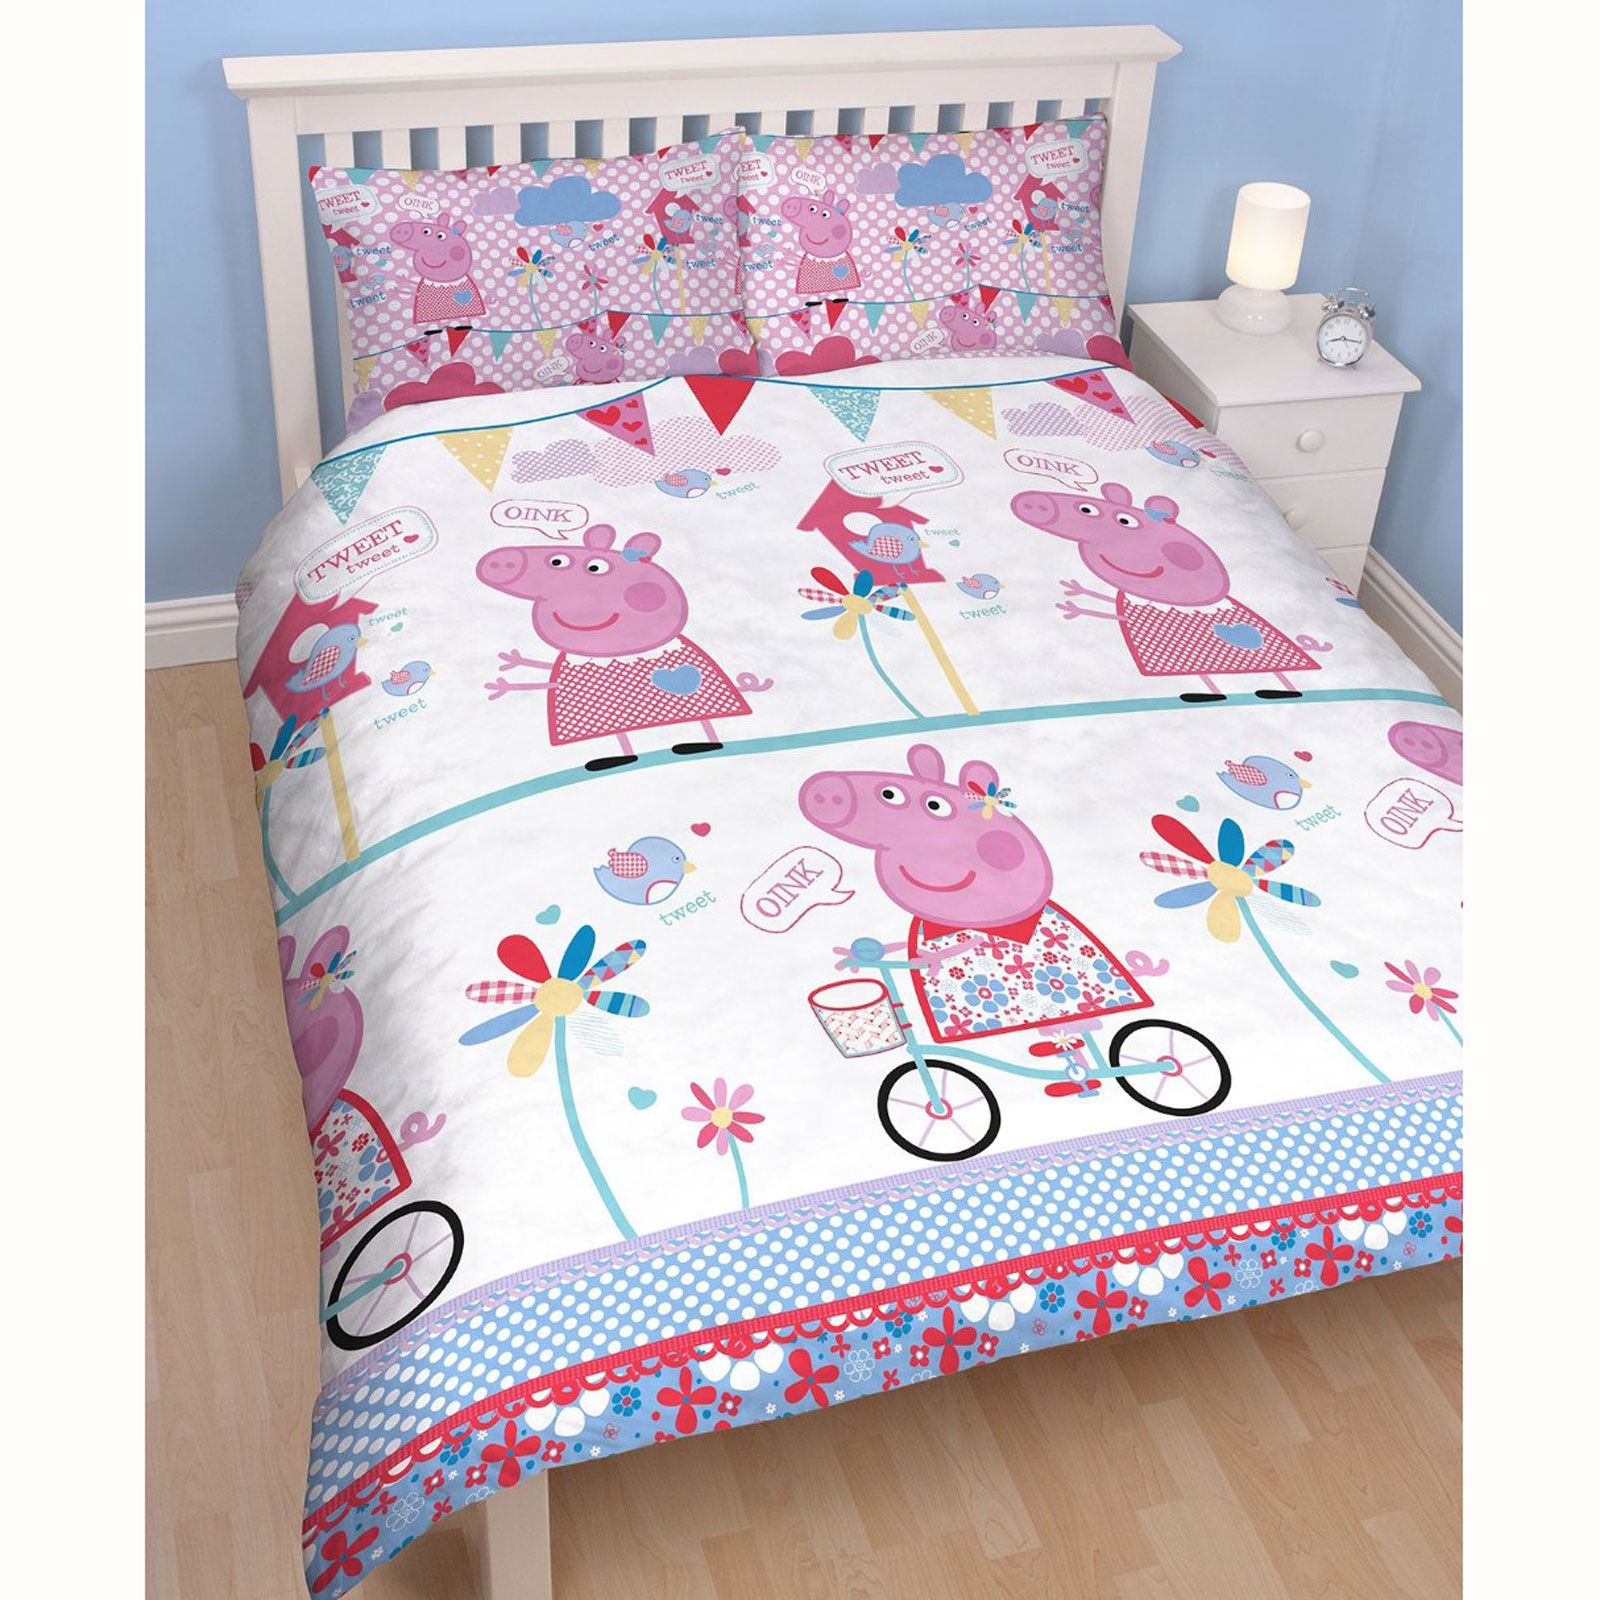 PEPPA PIG & GEORGE PIG DUVET QUILT COVERS – TODDLER, SINGLE ... : double size quilt - Adamdwight.com